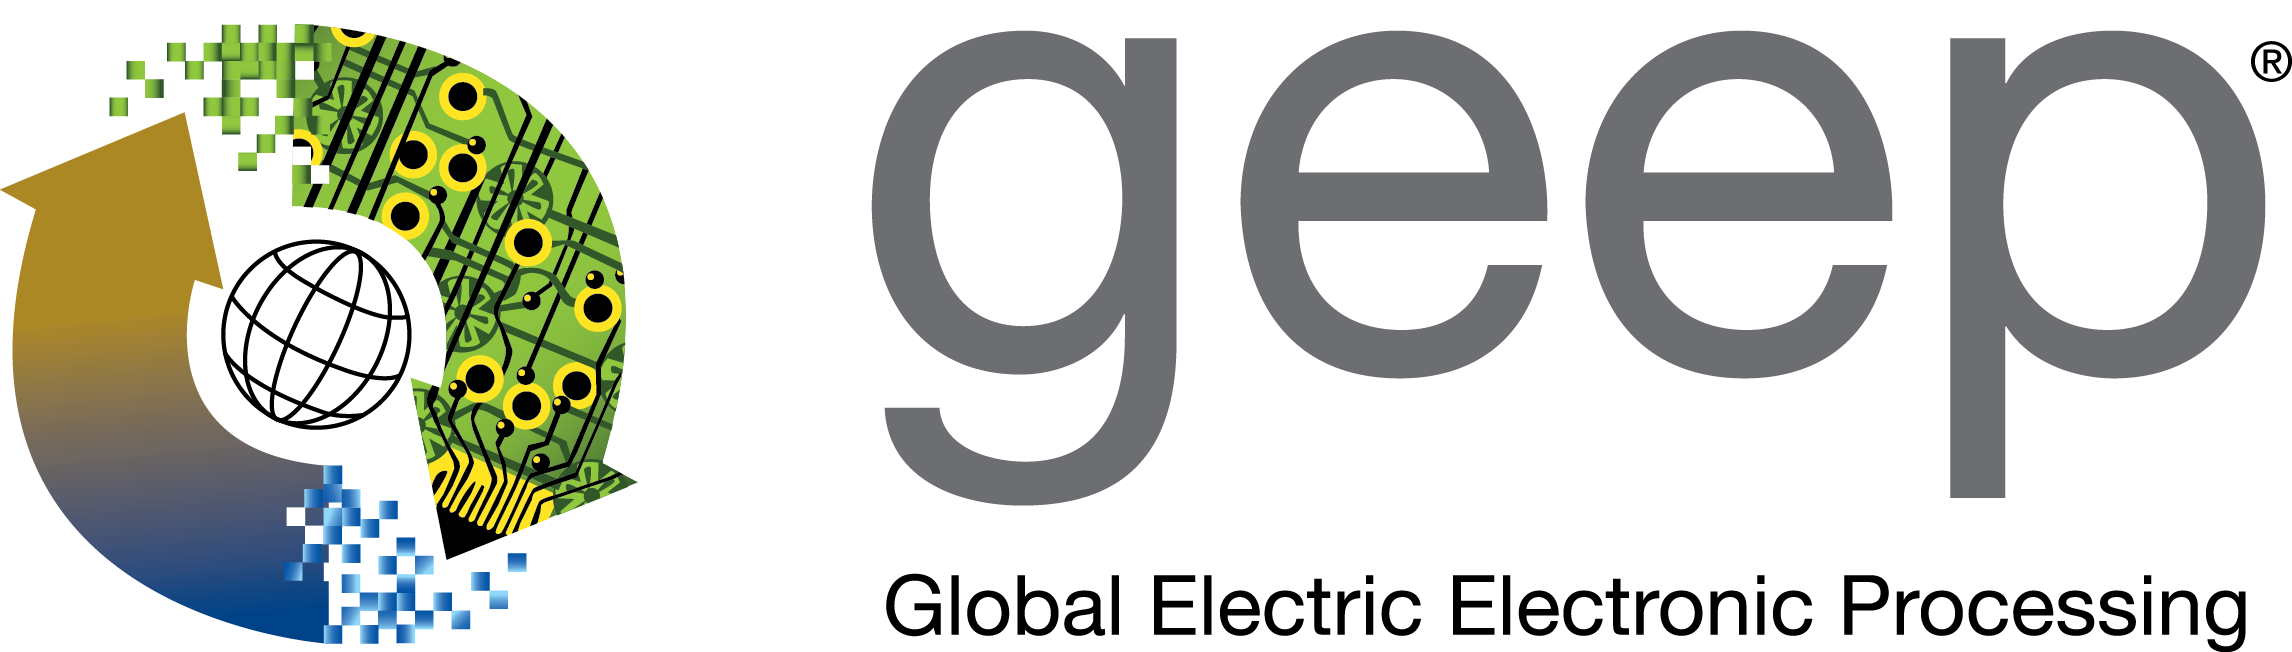 GEEP logo_colour.png